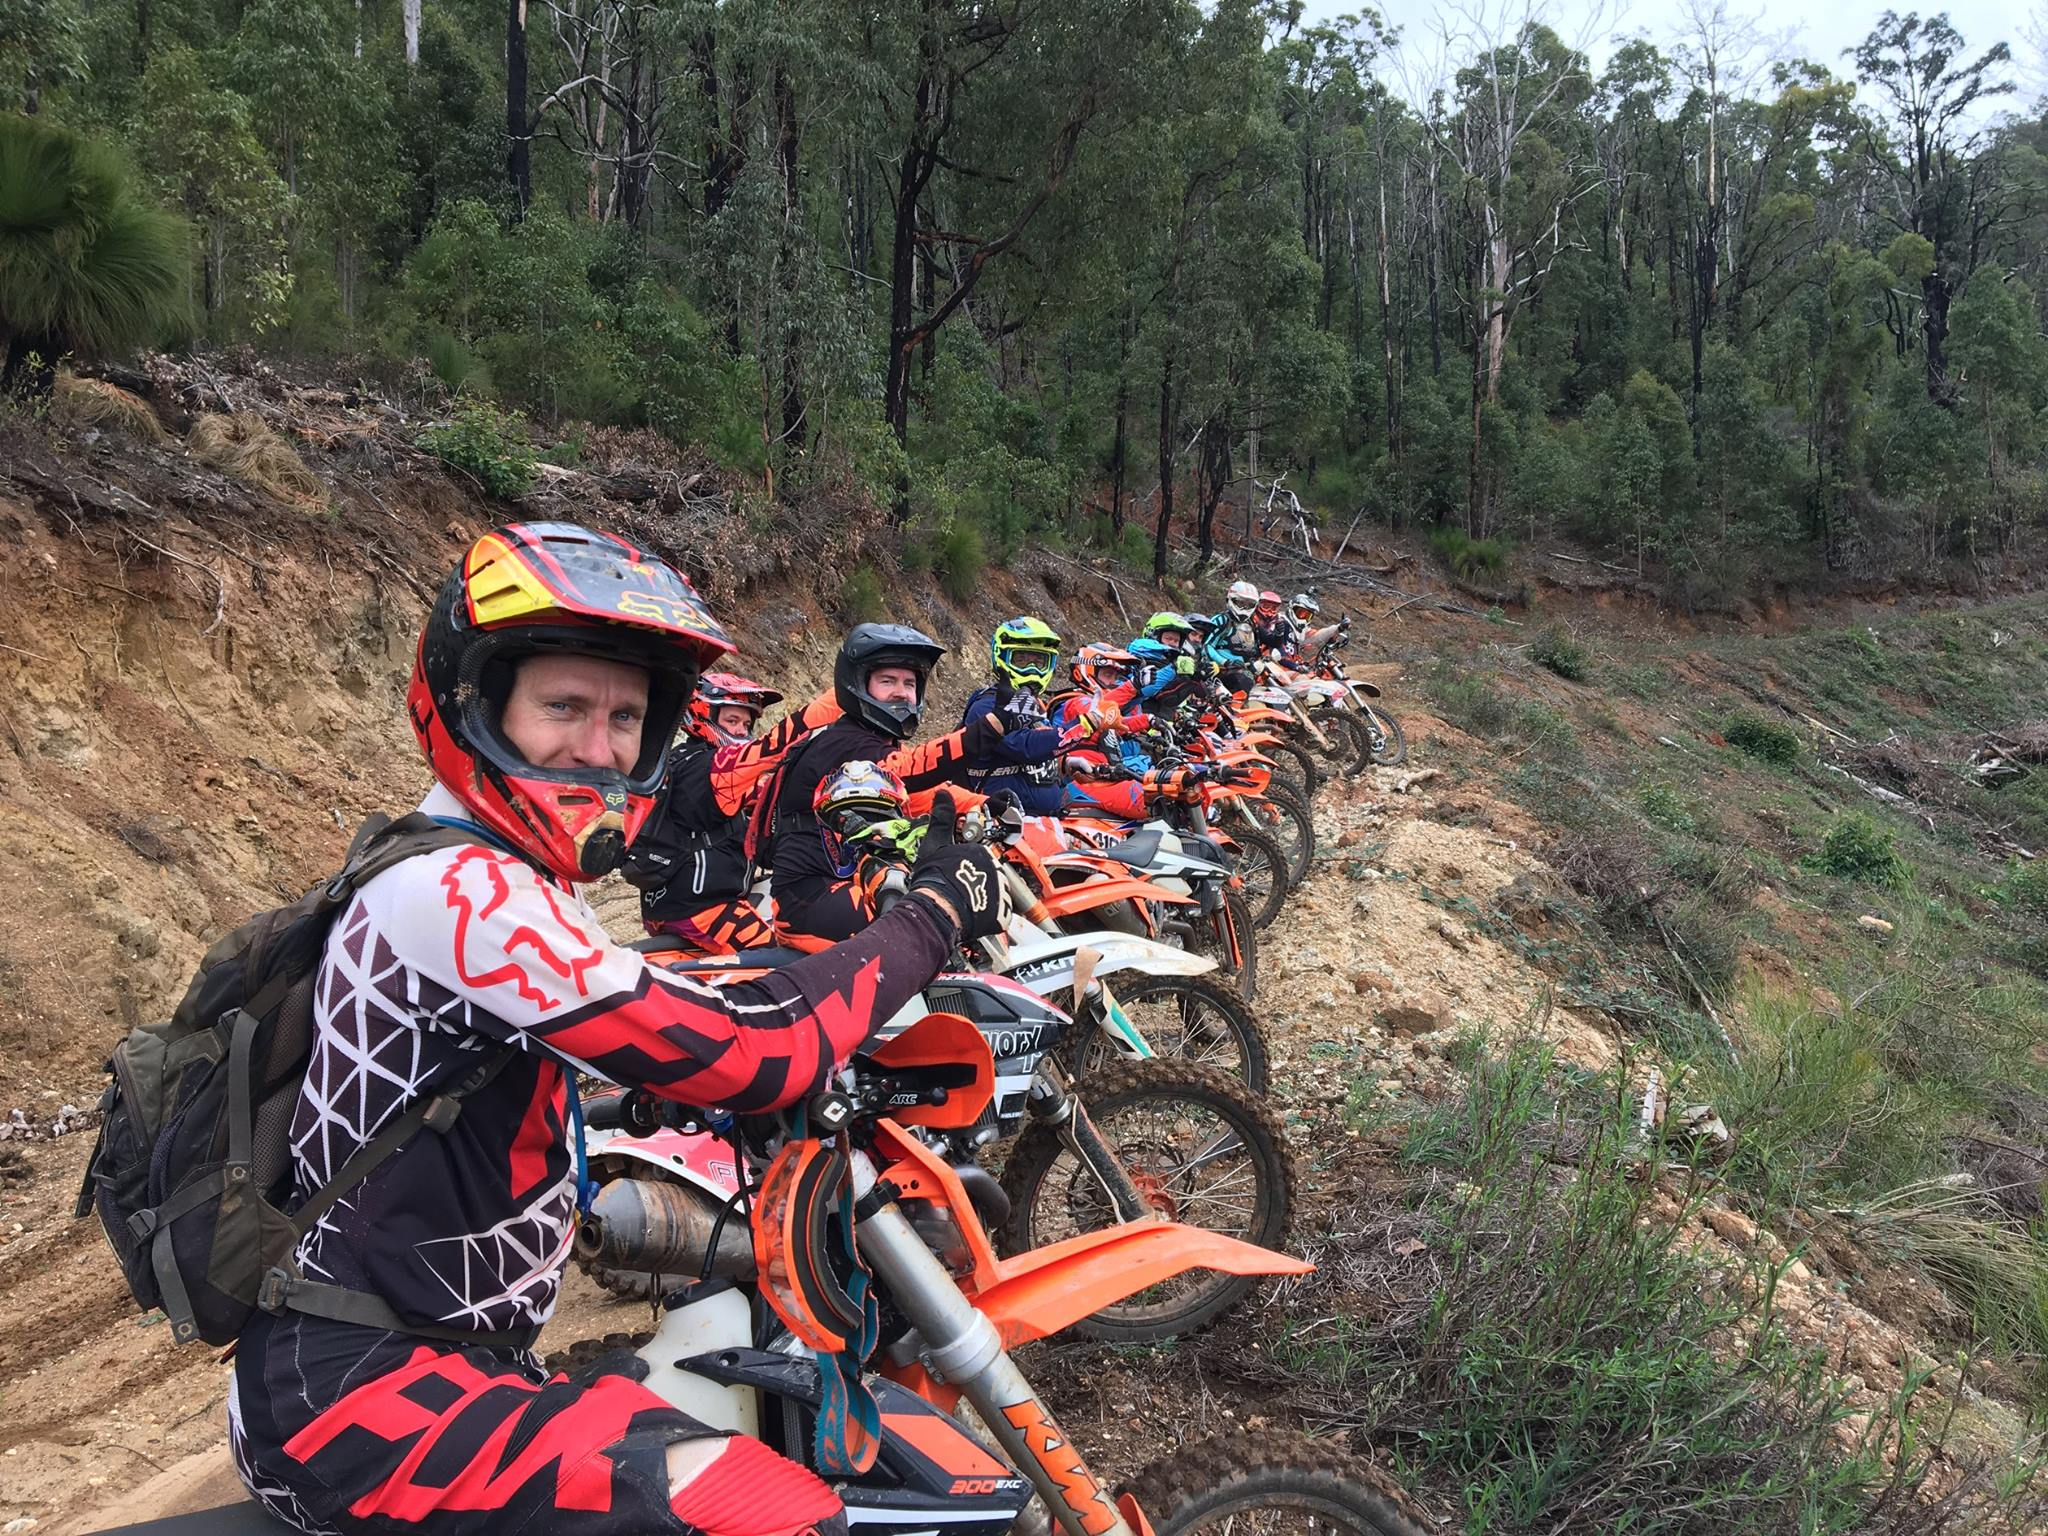 Bunbury KTM Suzuki - Custom Hills 'n Thrills Tour - Sat 14 & Sun 15 Sept 2019